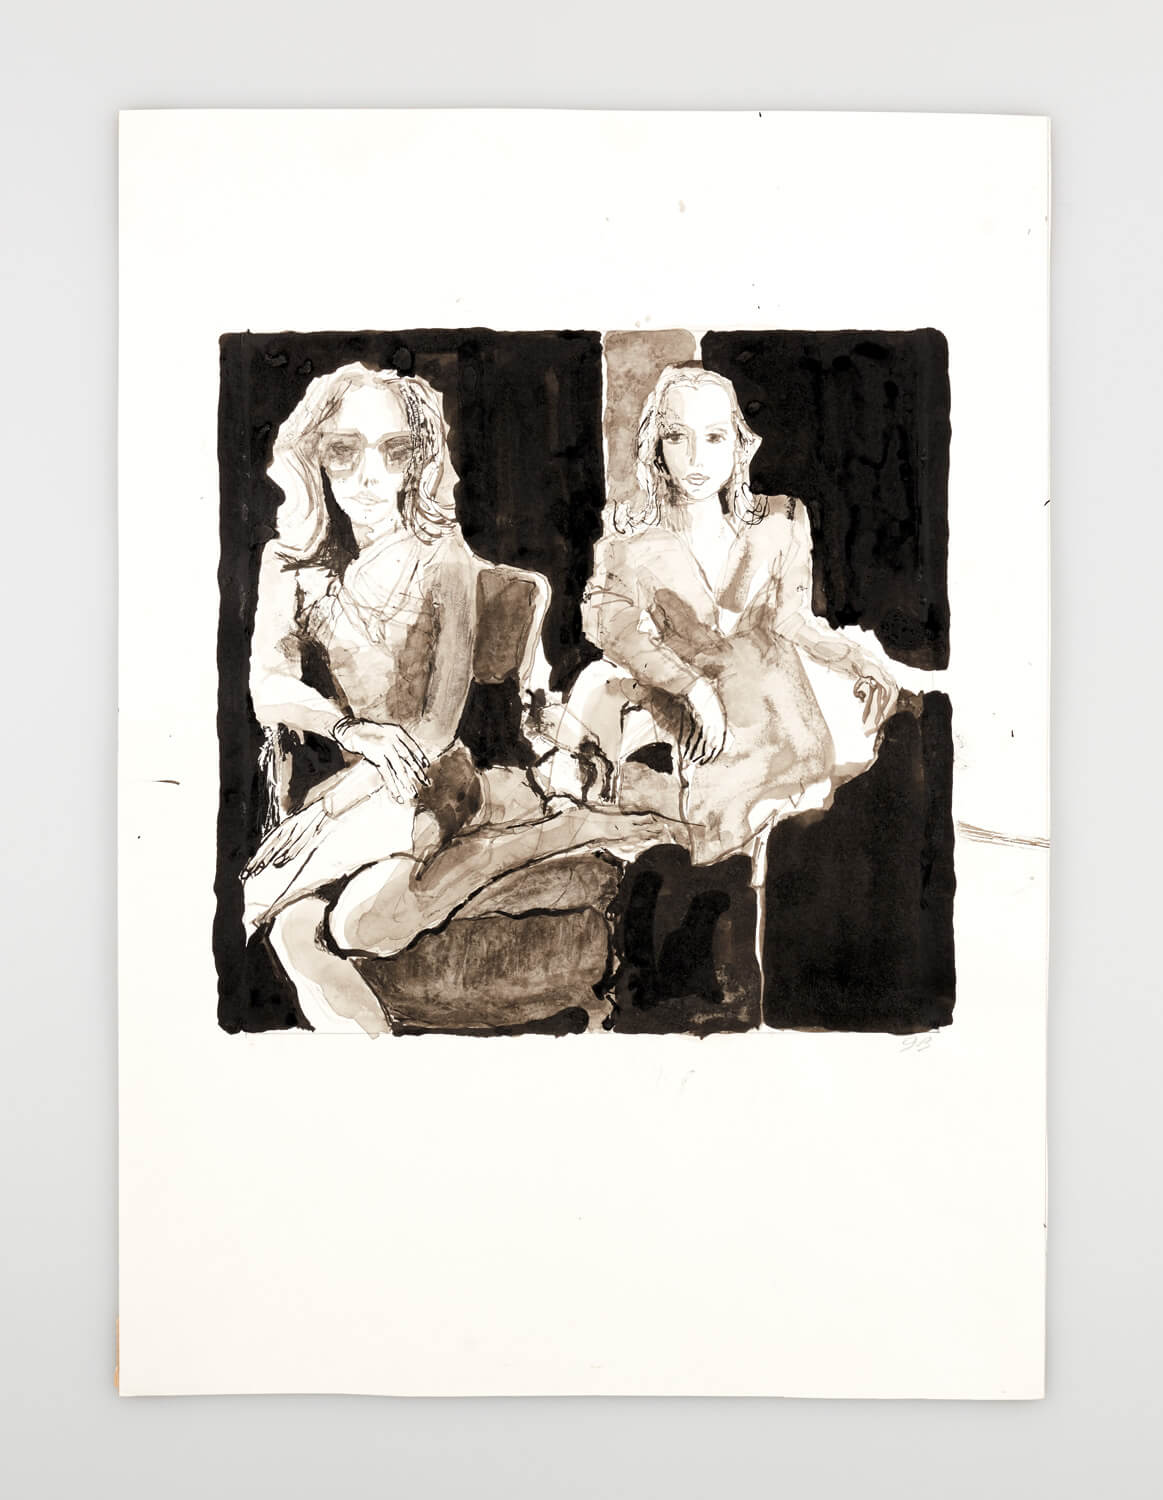 JB111 - Two Mannequins one wearing sunglasses - 2000 - 26 x 27 cm - Indian ink